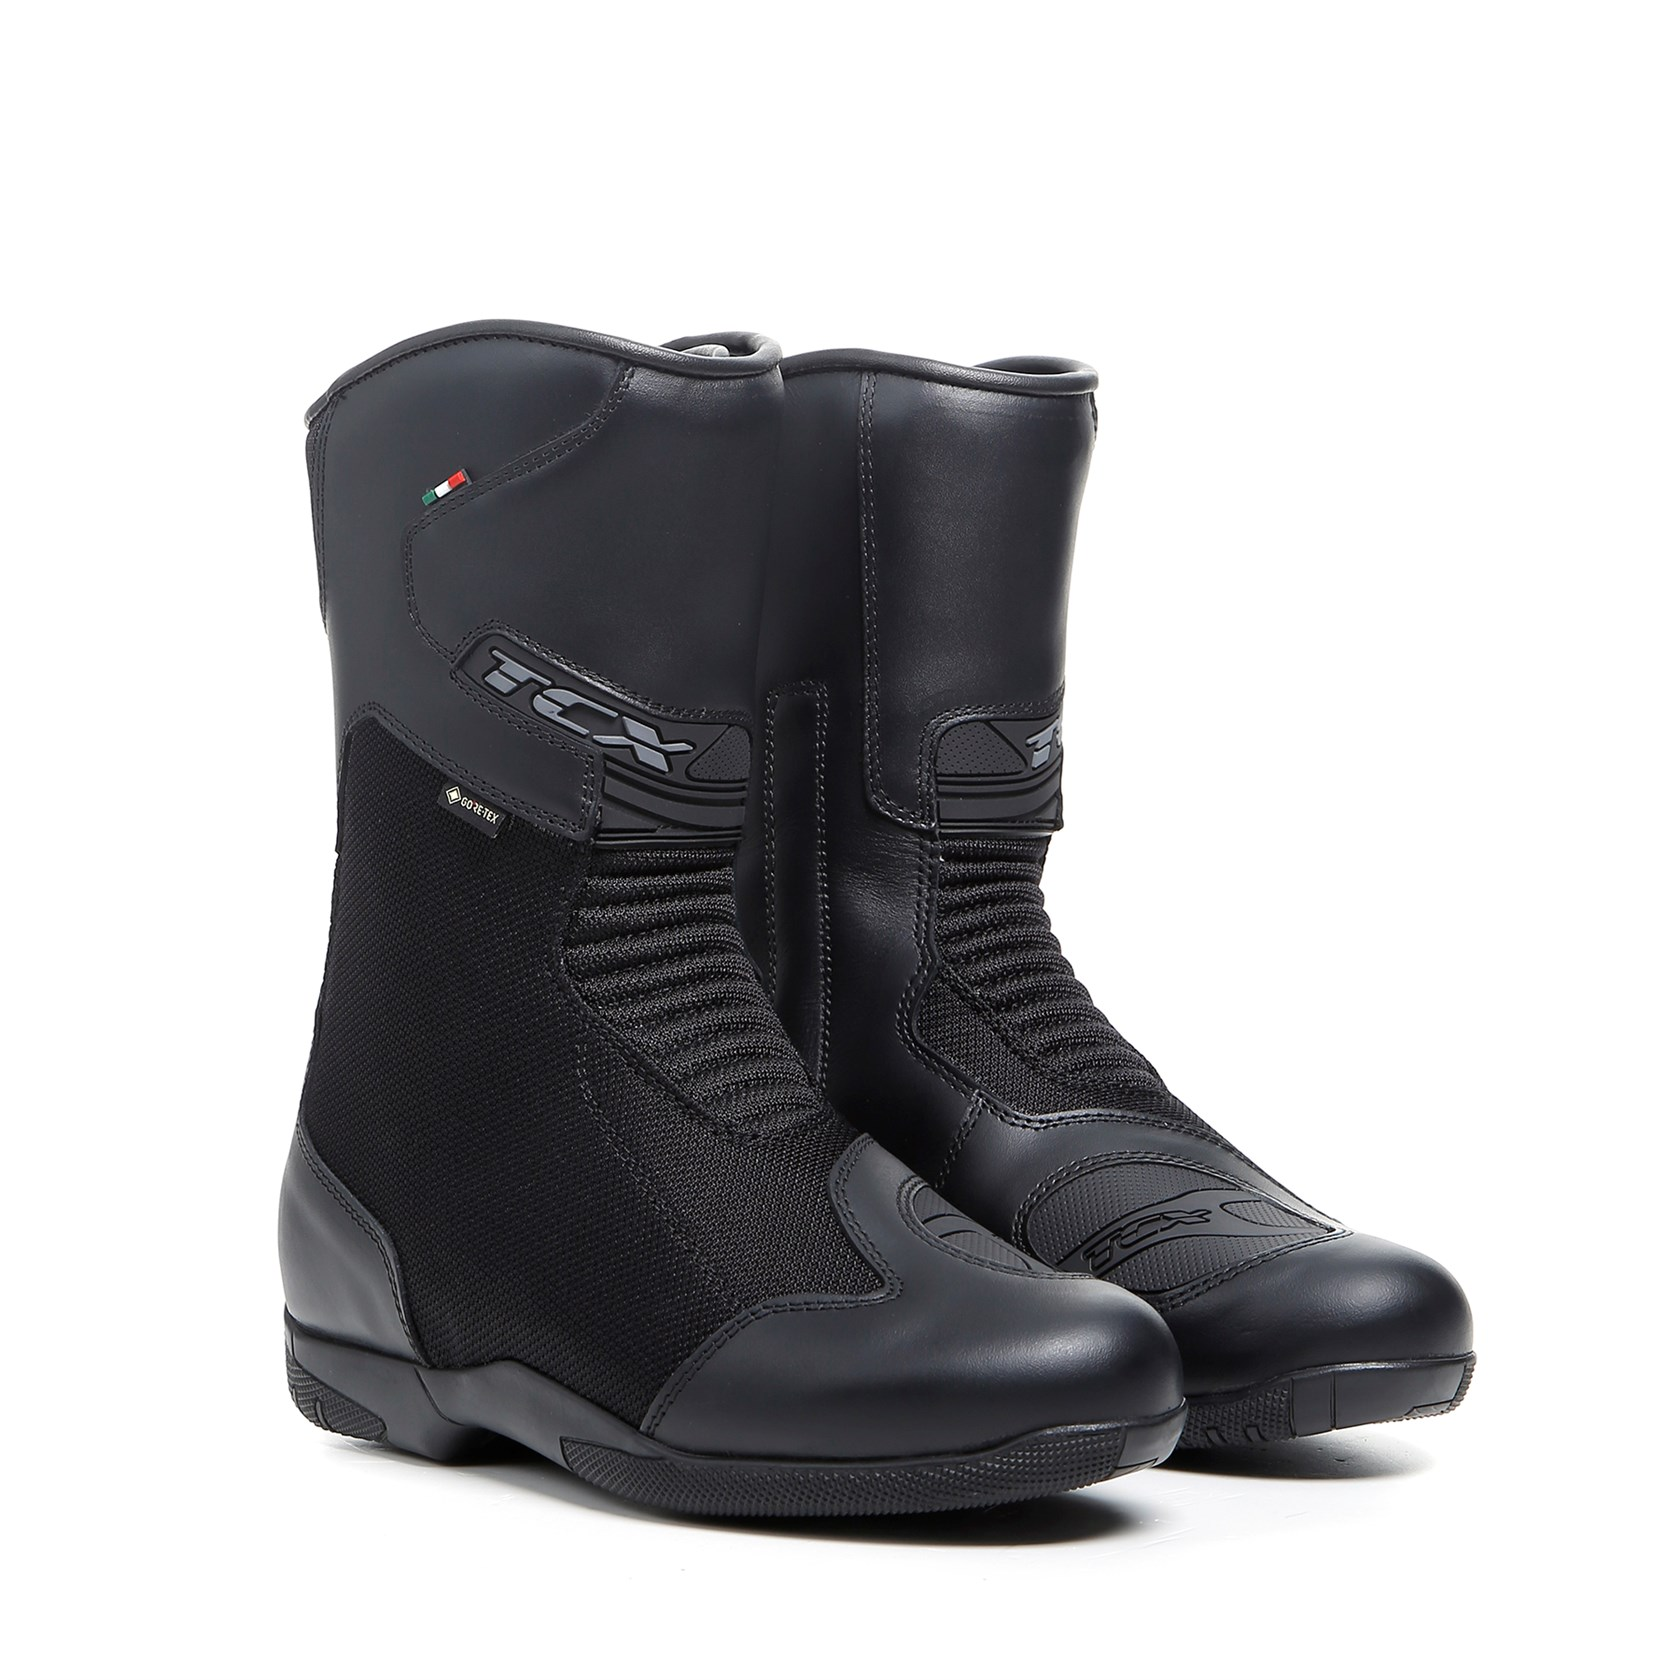 new york exquisite style fantastic savings TCX Lady Tourer boot in black